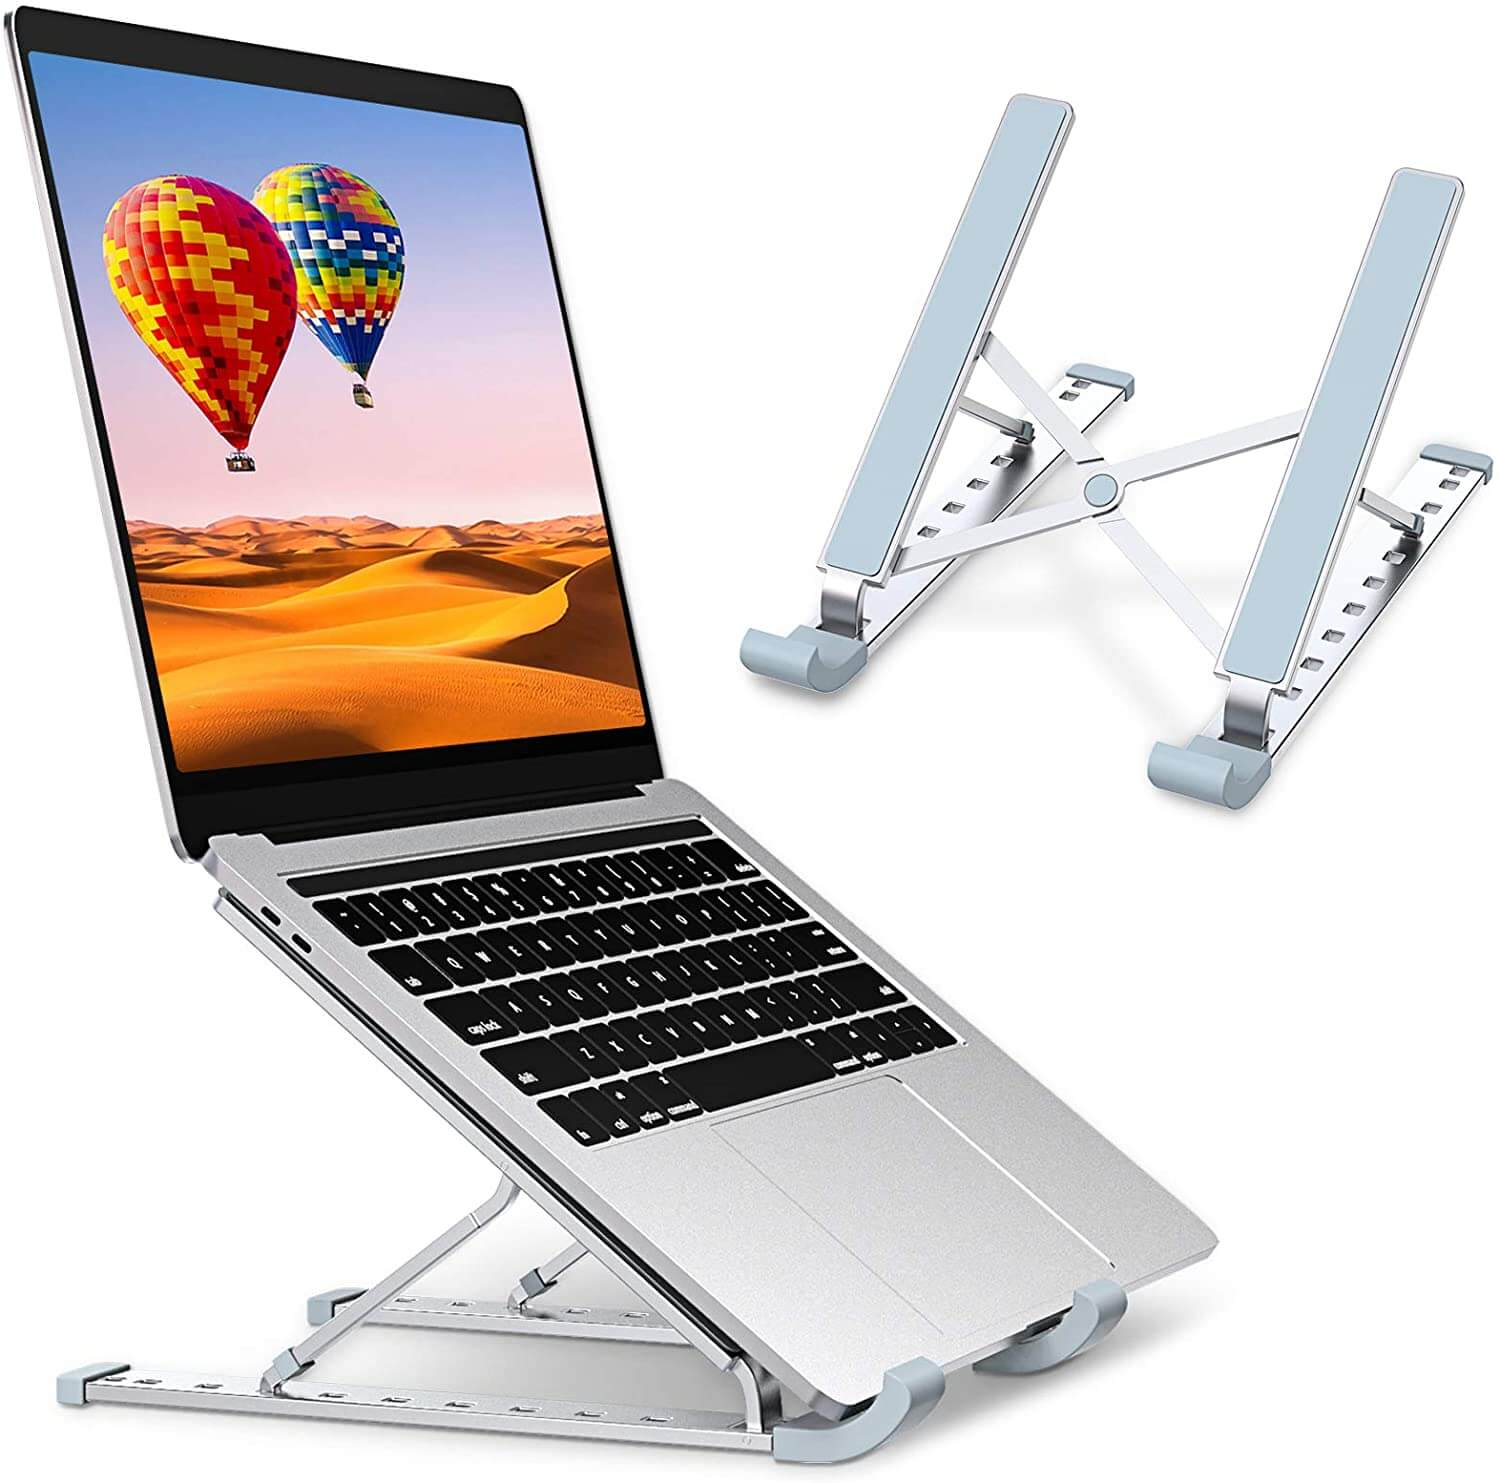 Aluminum Laptop Stand 9 Angles Adjustable Holder Ergonomic Foldable Portable Computer Tablet Stand - Teddith - US